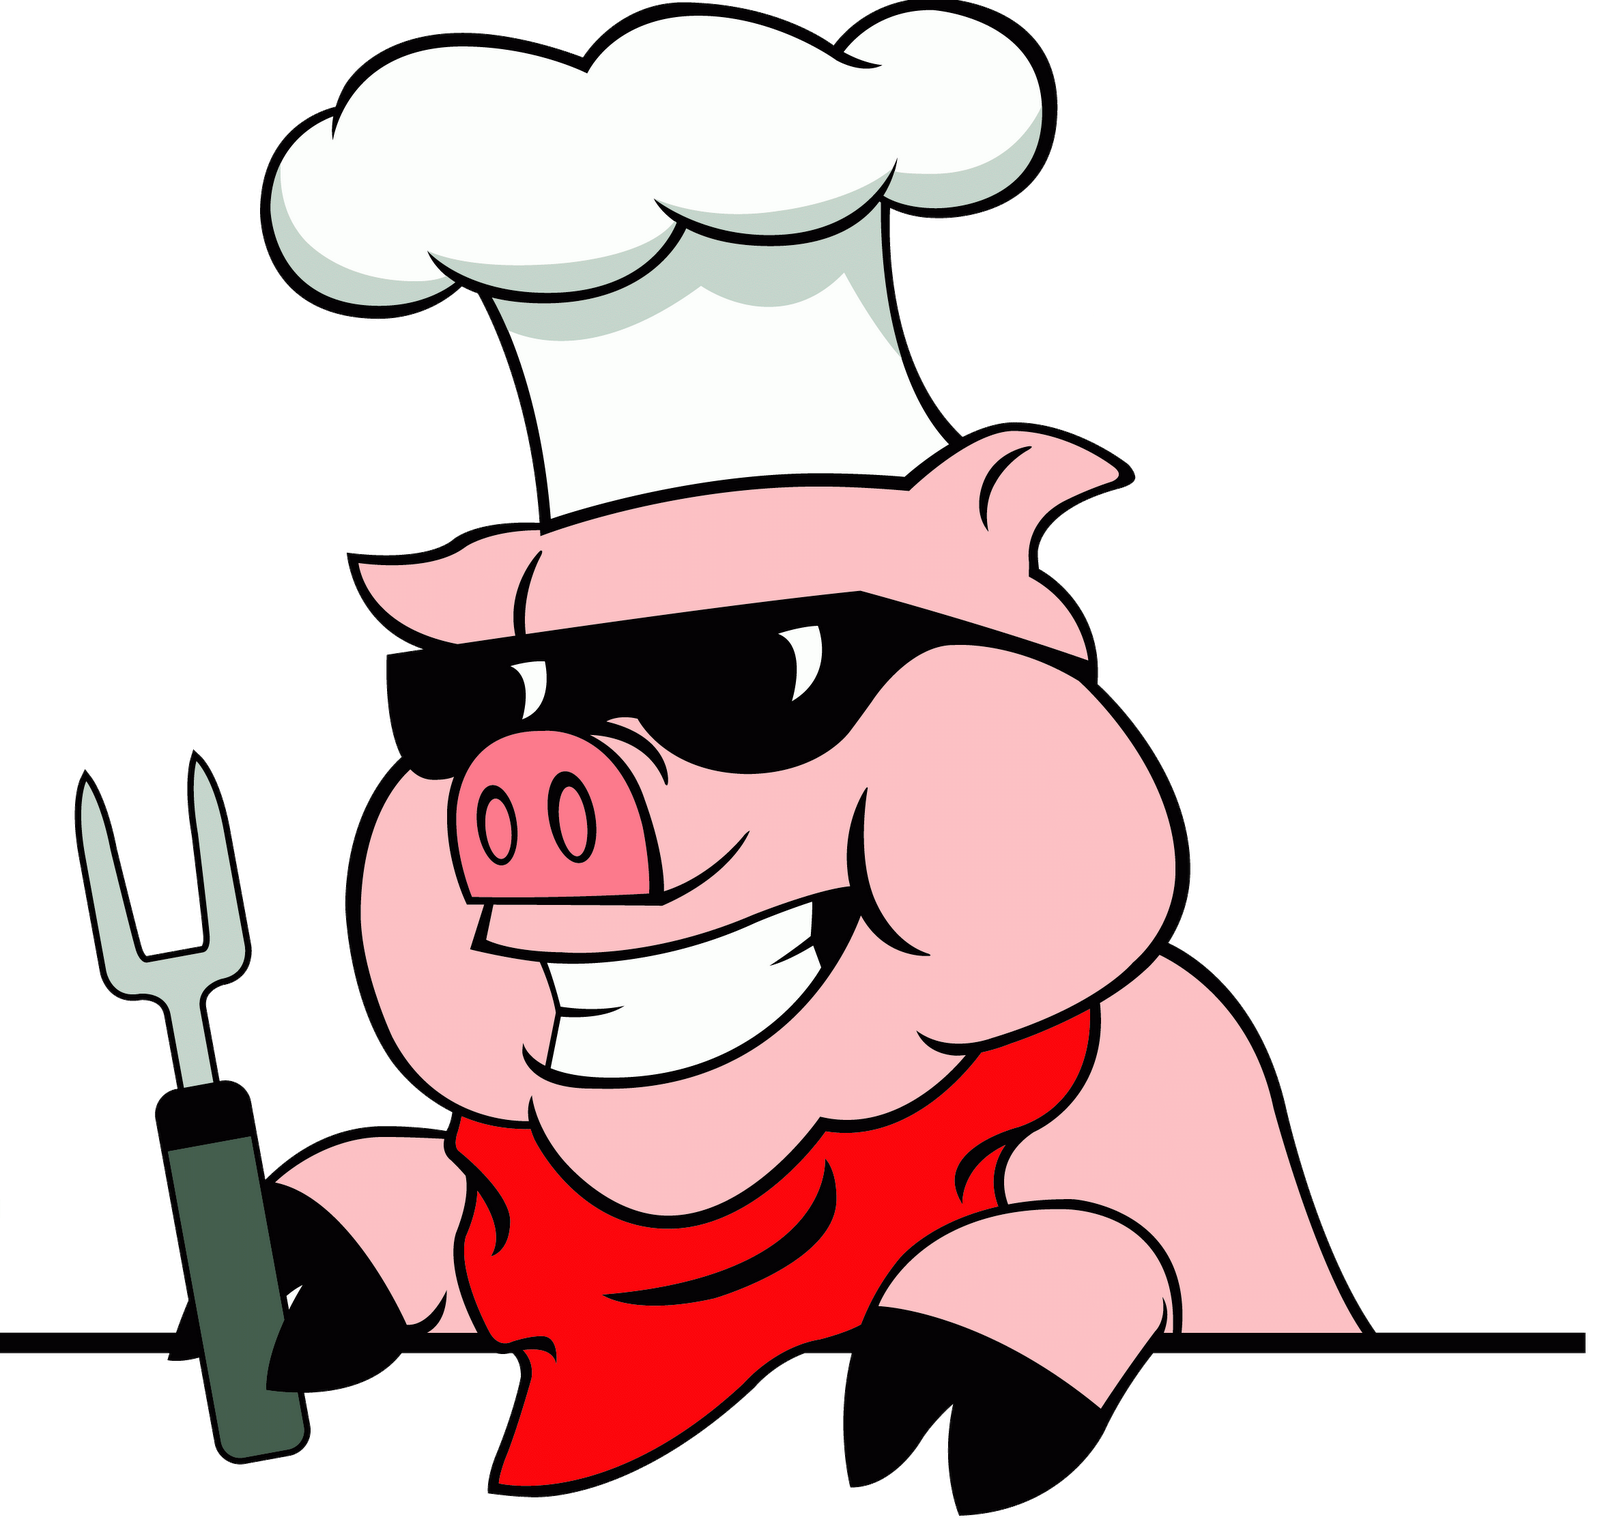 Barbecue Pig PNG Transparent Barbecue Pig.PNG Images..